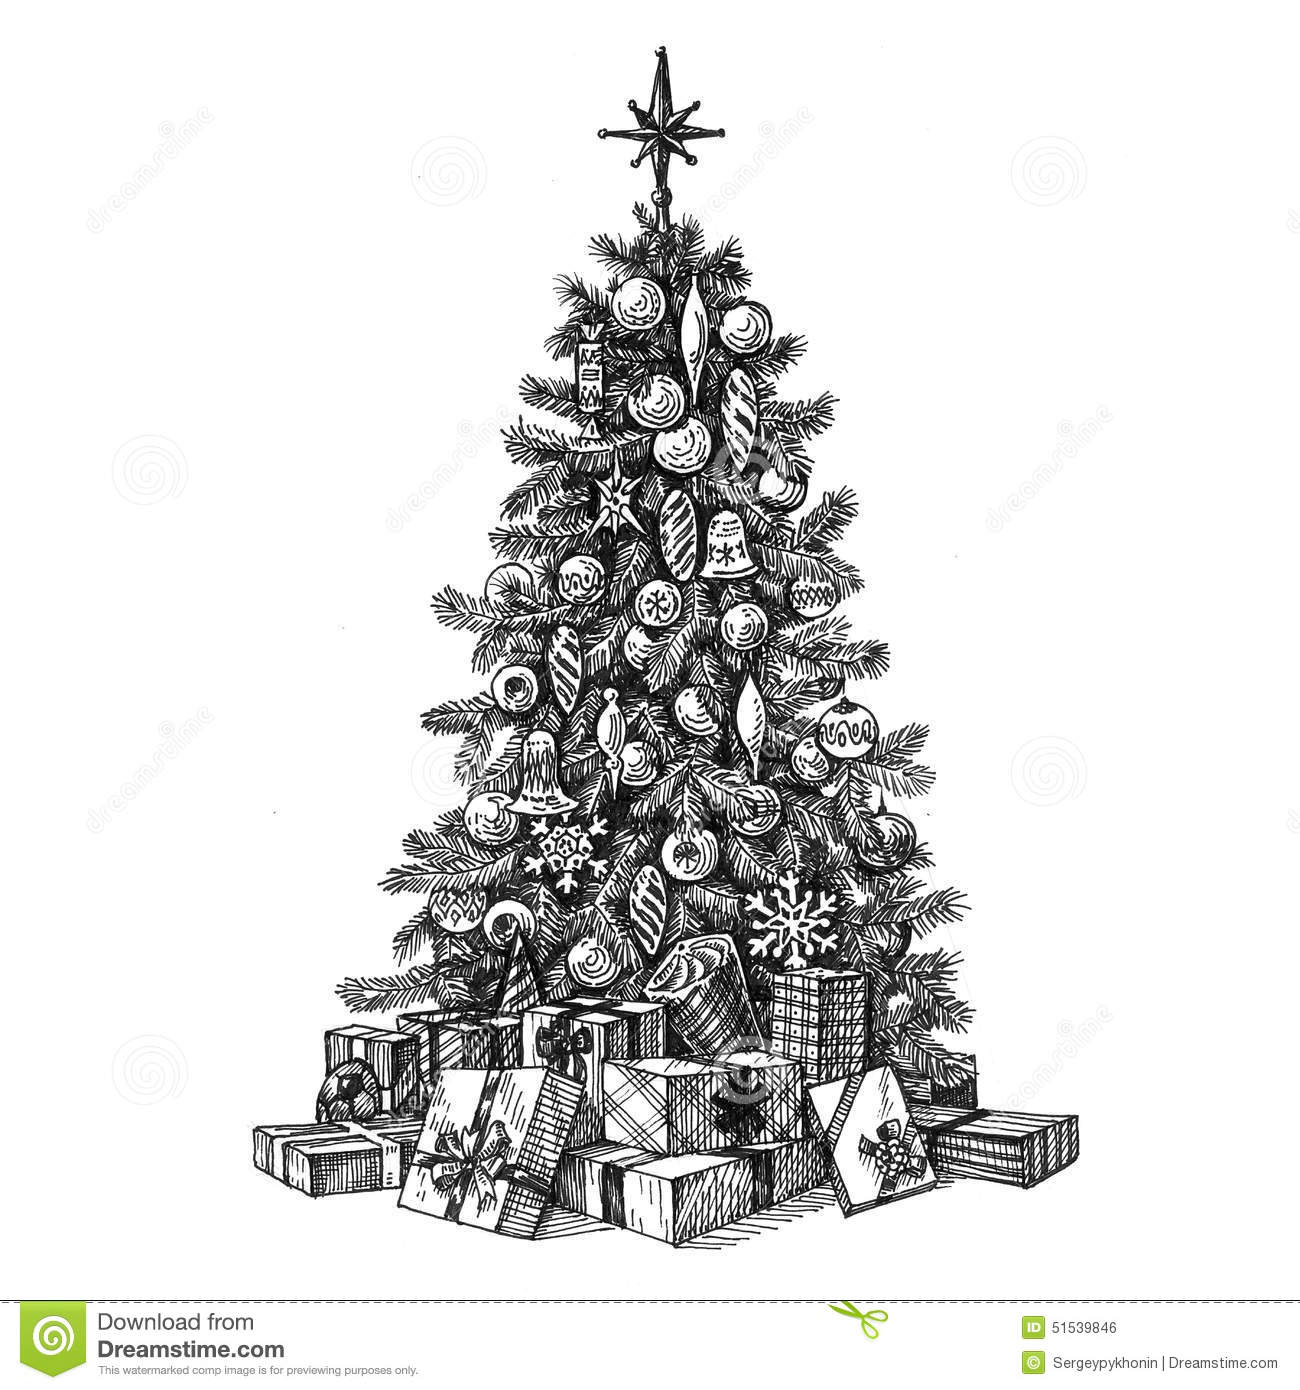 Christmas Tree On A White Background. Sketch Stock Illustration - Image 51539846